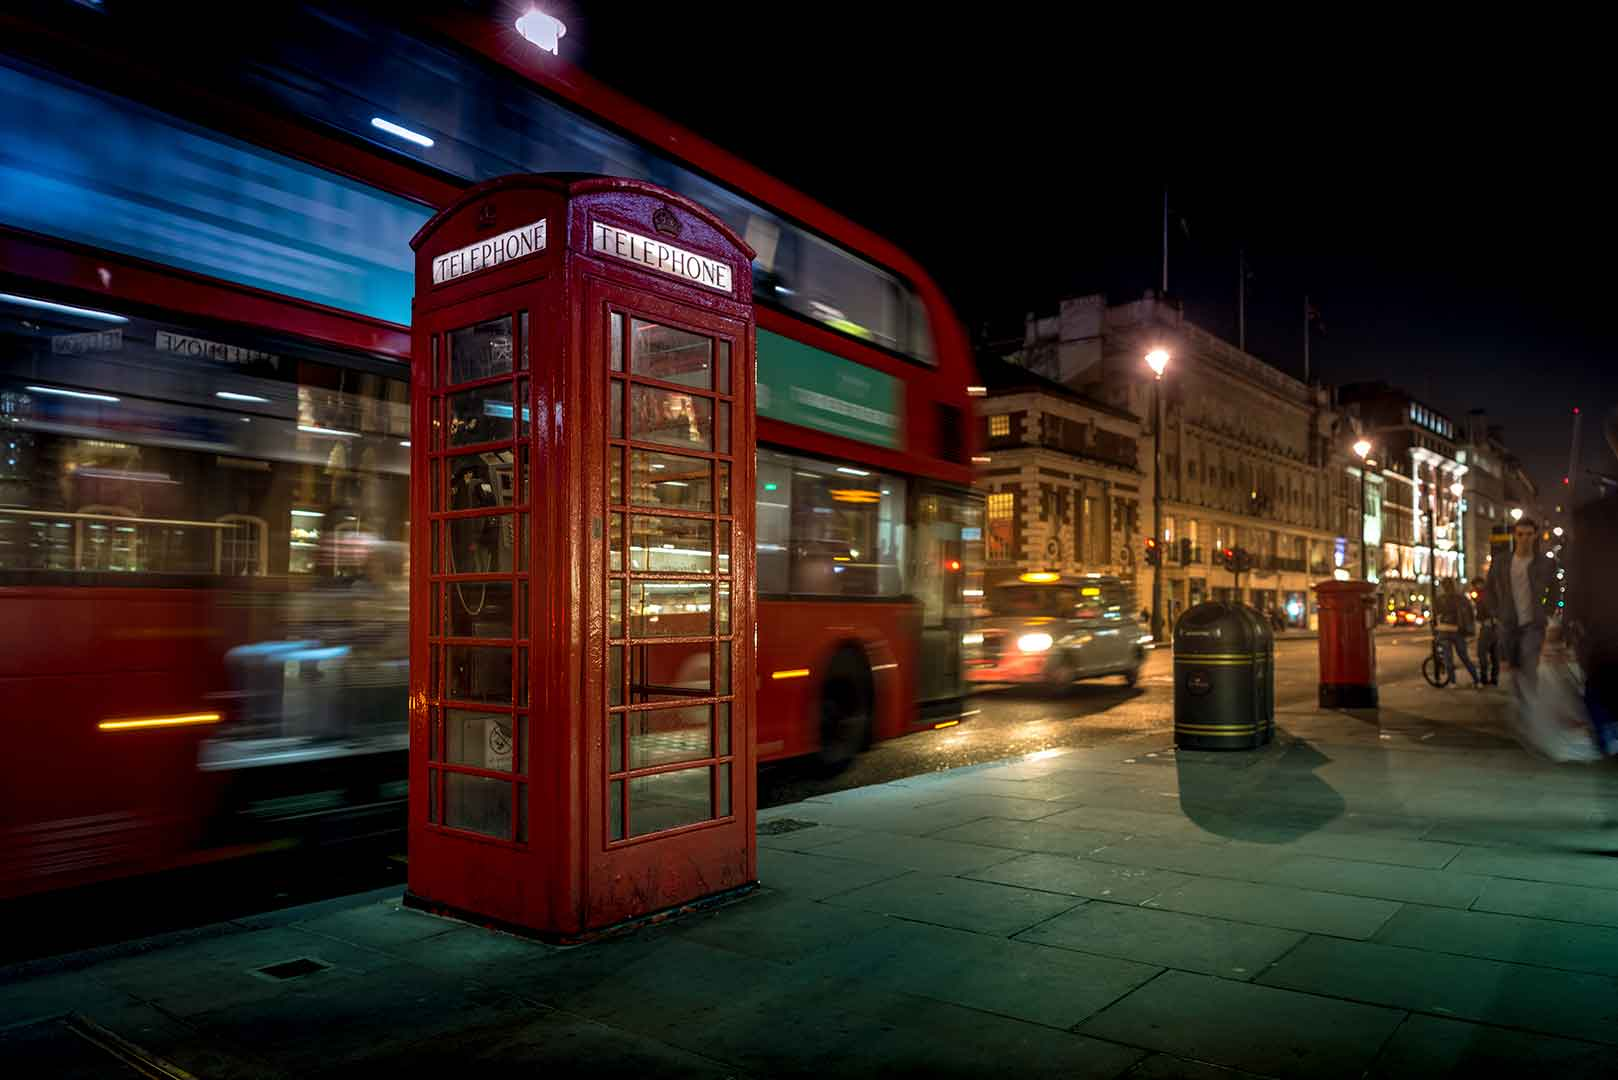 United Kingdom, London - Telephone booth and bus